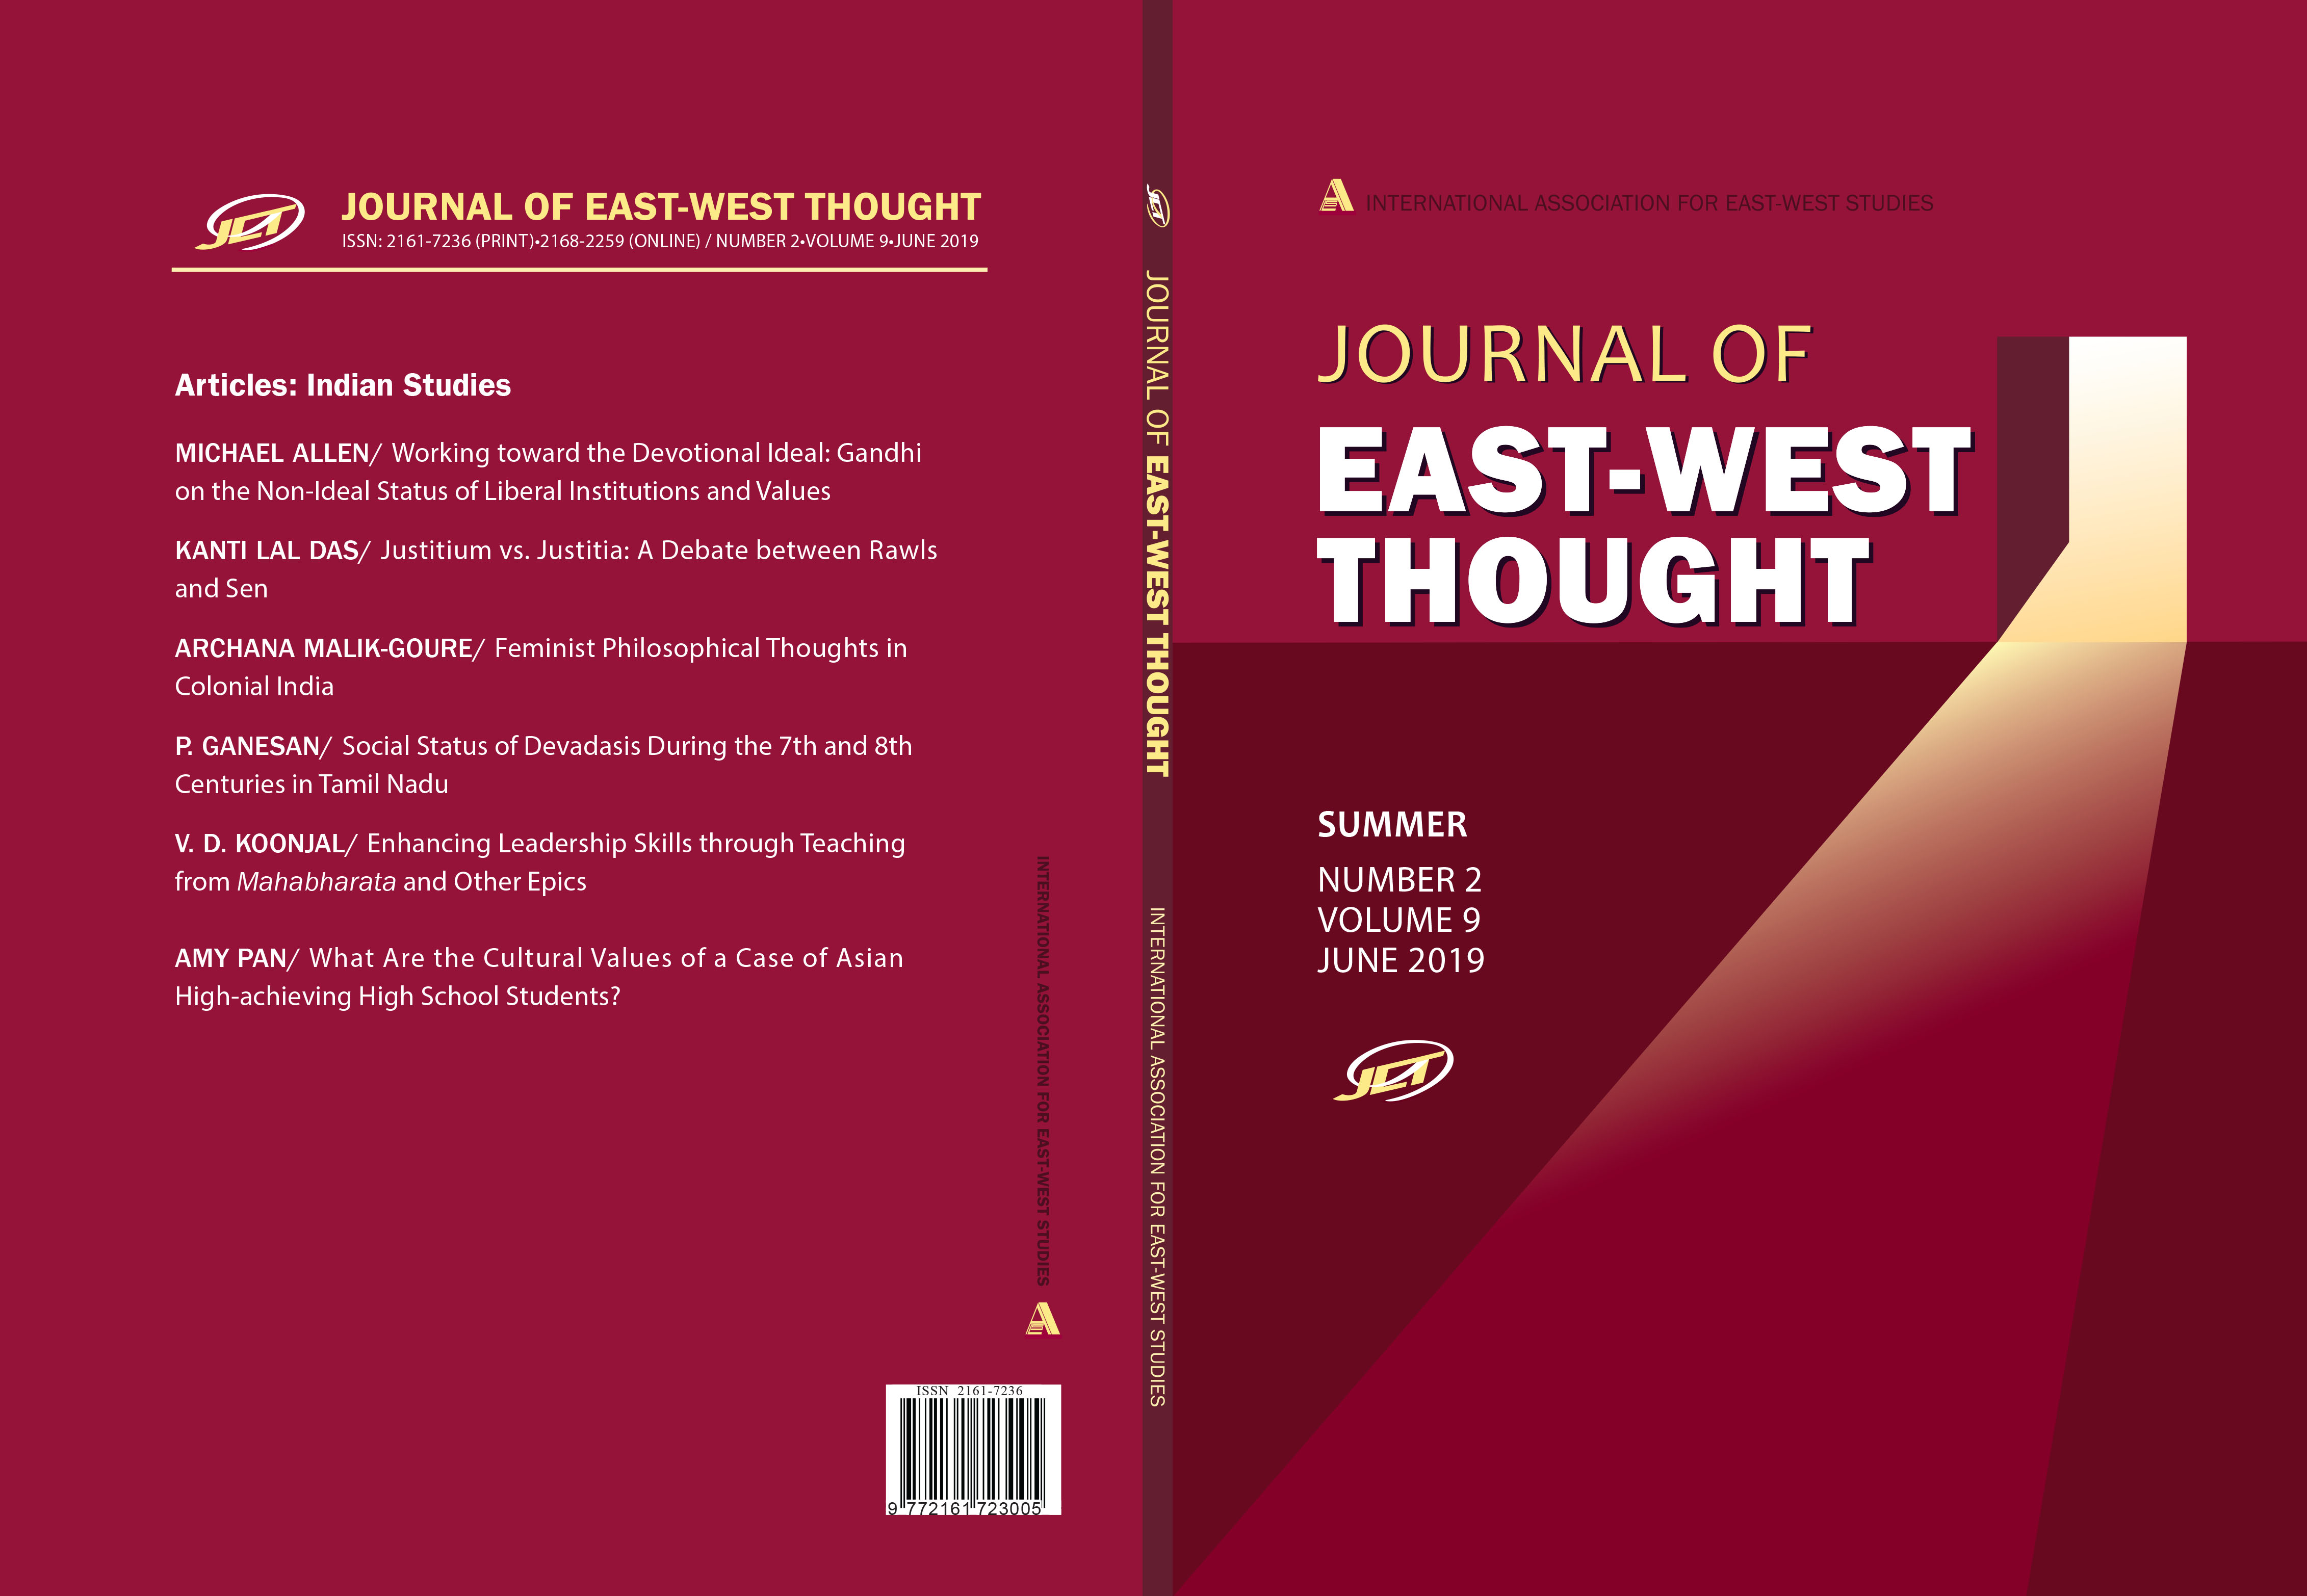 Front and back cover of the Journal of East West Thought Volume 9, Number 2, 2019